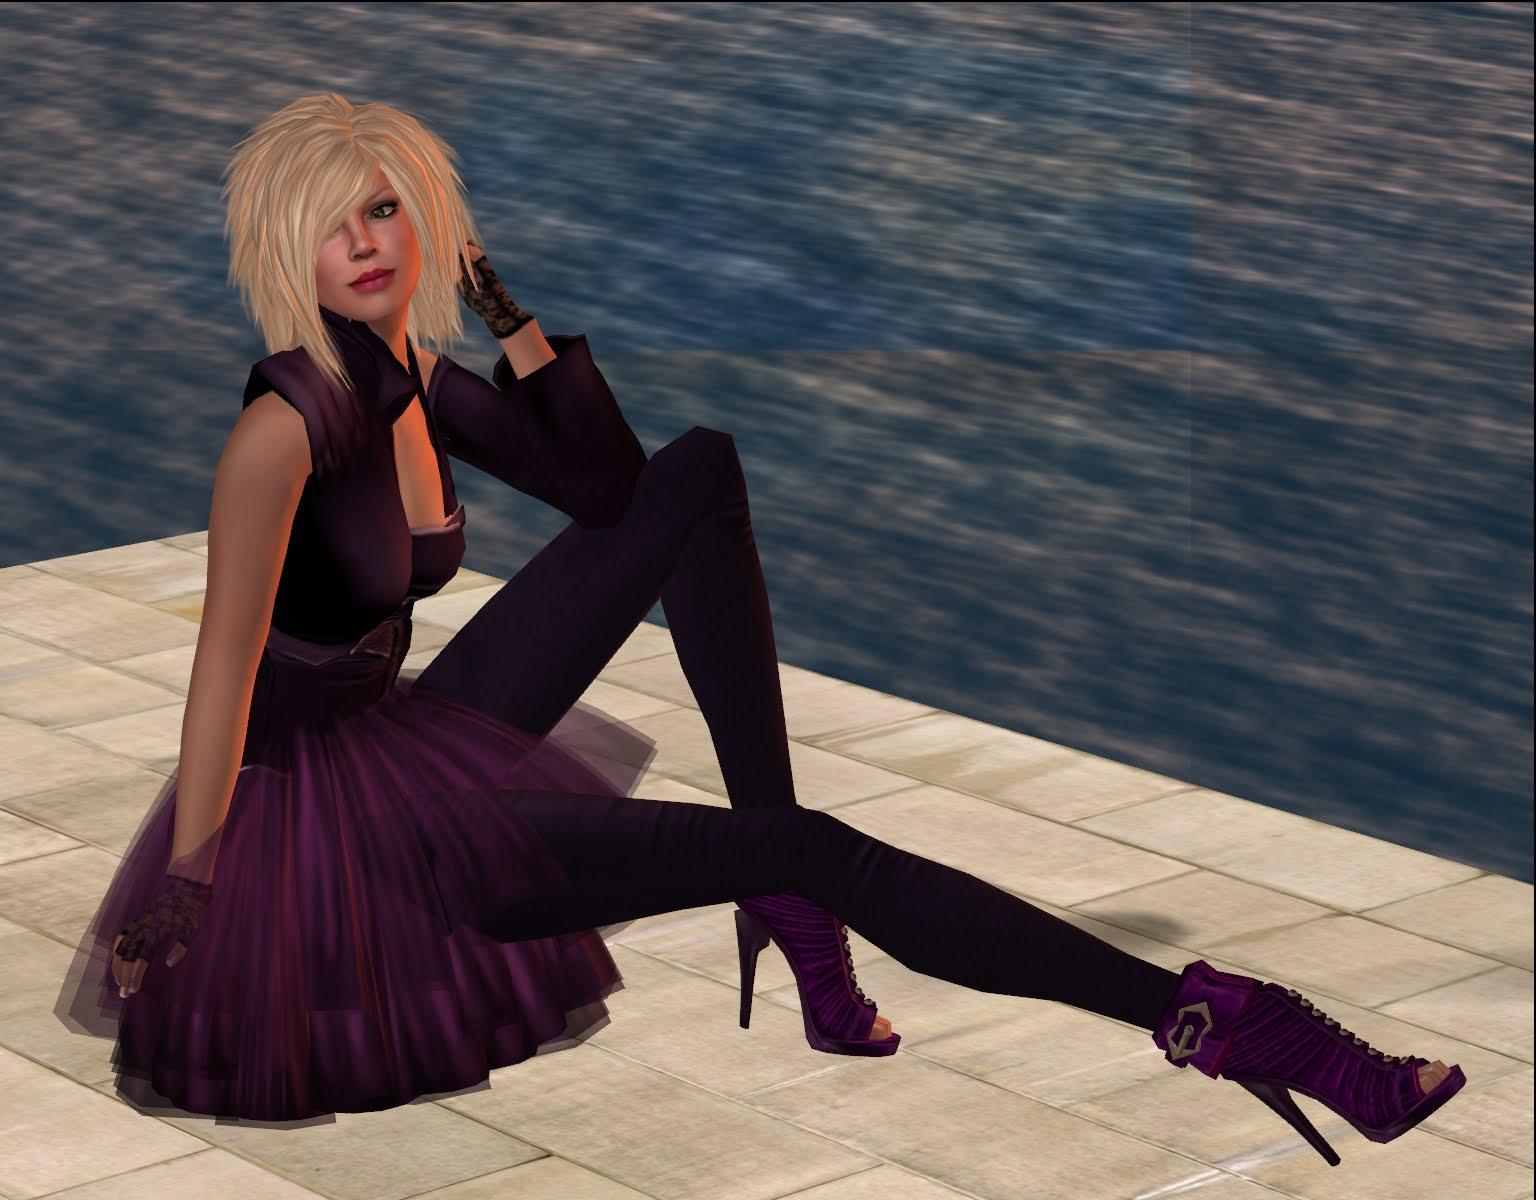 http://1.bp.blogspot.com/_fHcdFXy_4Bo/TH6Cd6ttiZI/AAAAAAAACfs/M_Idr0bZqEs/s1600/Purple+me+sitting+lavender+light+III_001.jpg